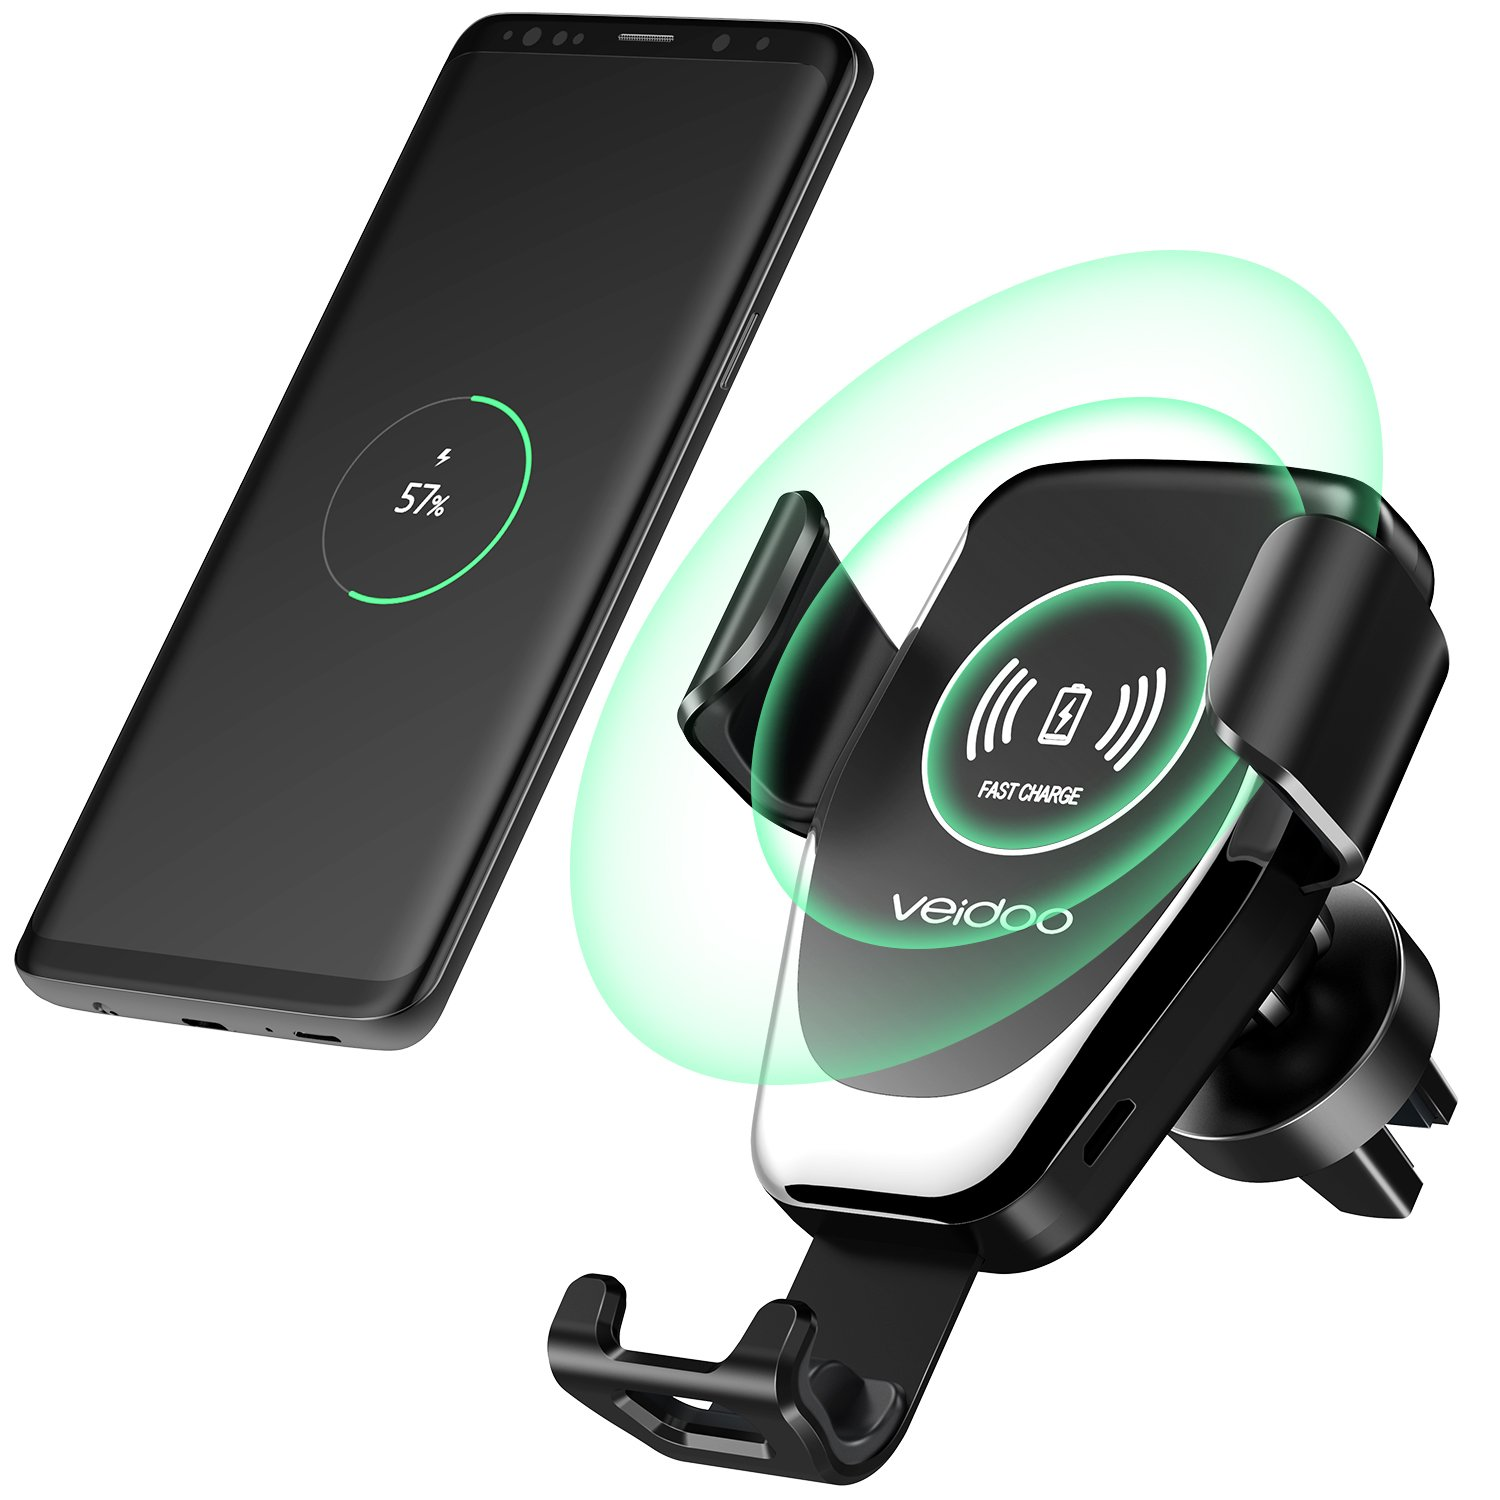 Wireless Car Charger, Veidoo Gravity Fast Charge Car Mount Air Vent Phone Holder for Samsung Galaxy S9 S9 Plus S8 S7/S7 Edge Note 8 5 & Standard Charge for iPhone X 8/8 Plus (Black)